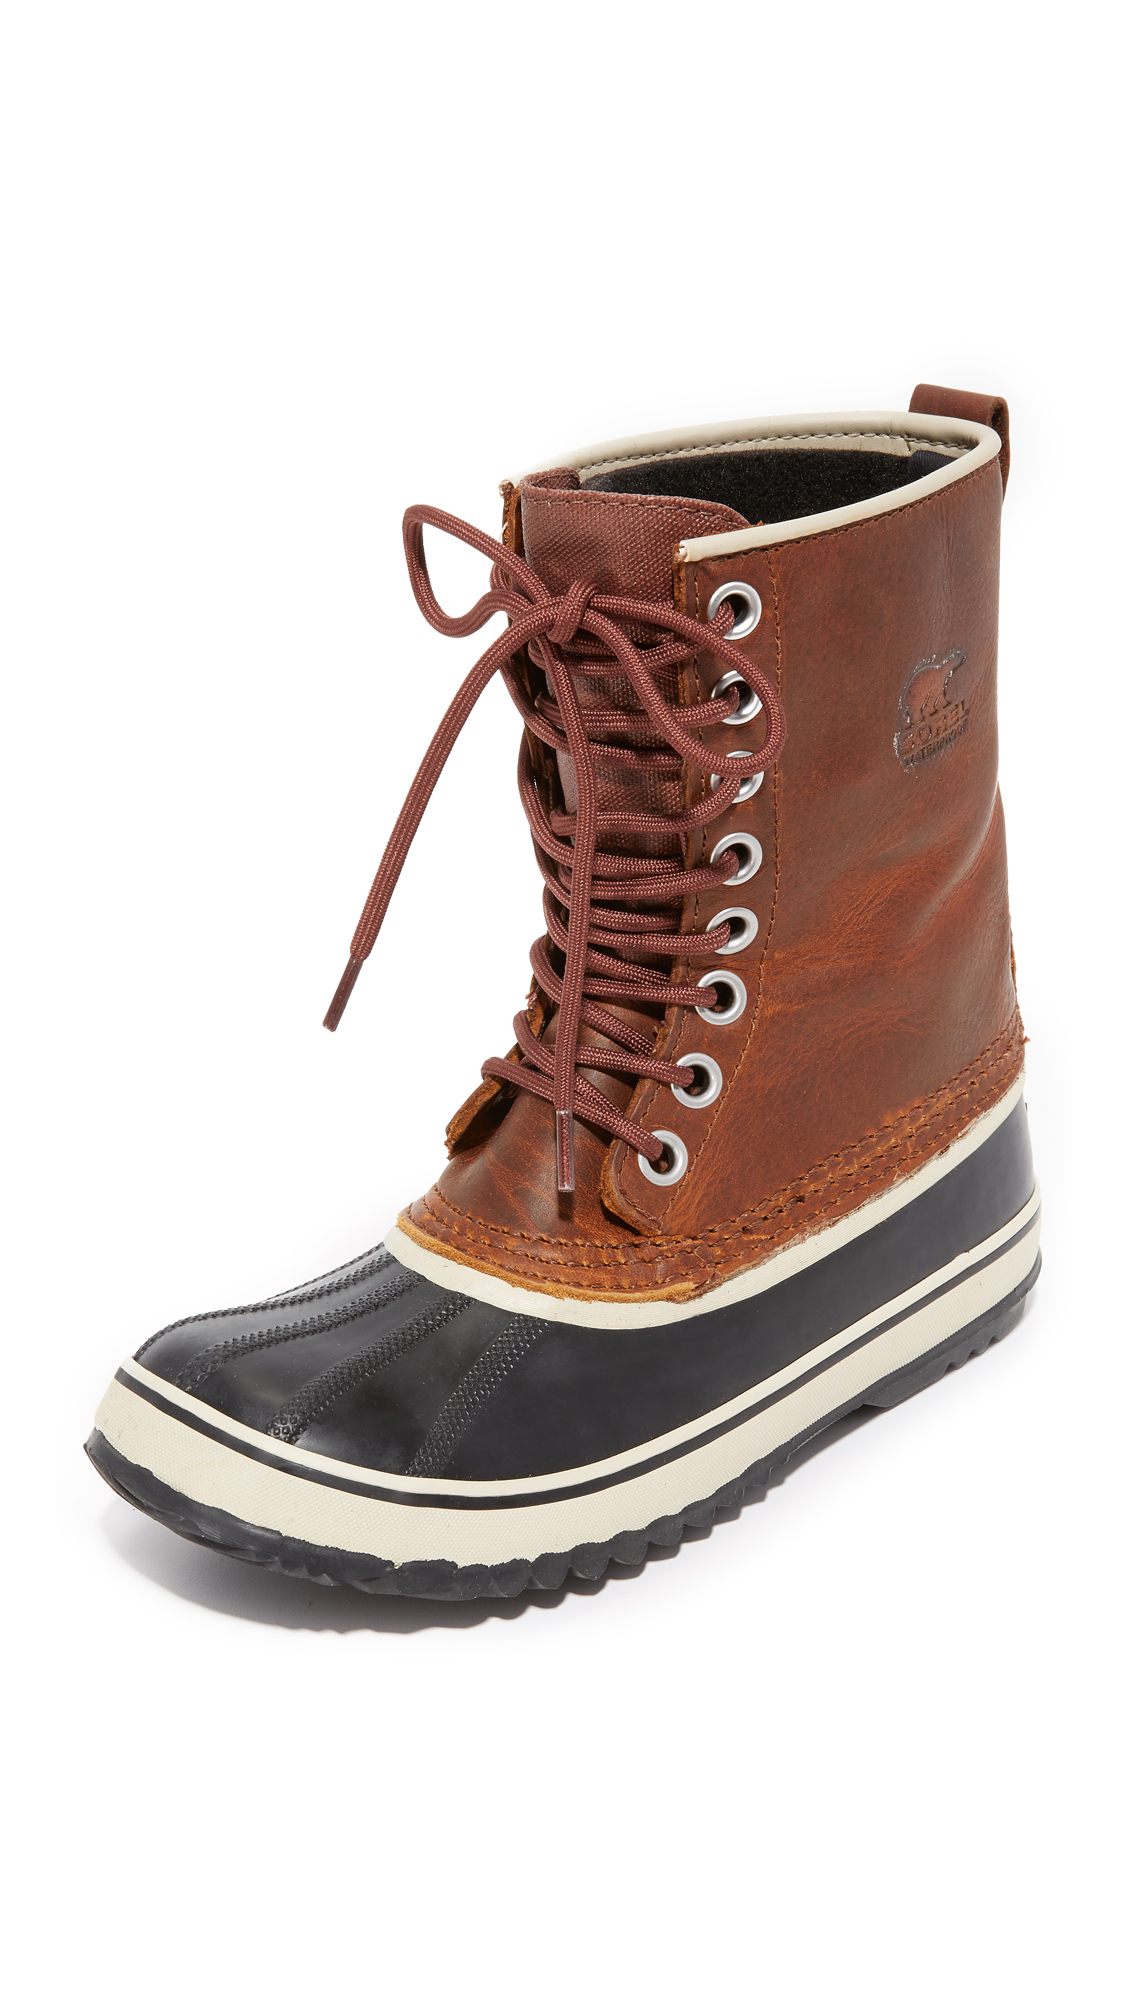 Photo of Sorel 1964 Premium Leather Boots Cappuccino - Sorel online